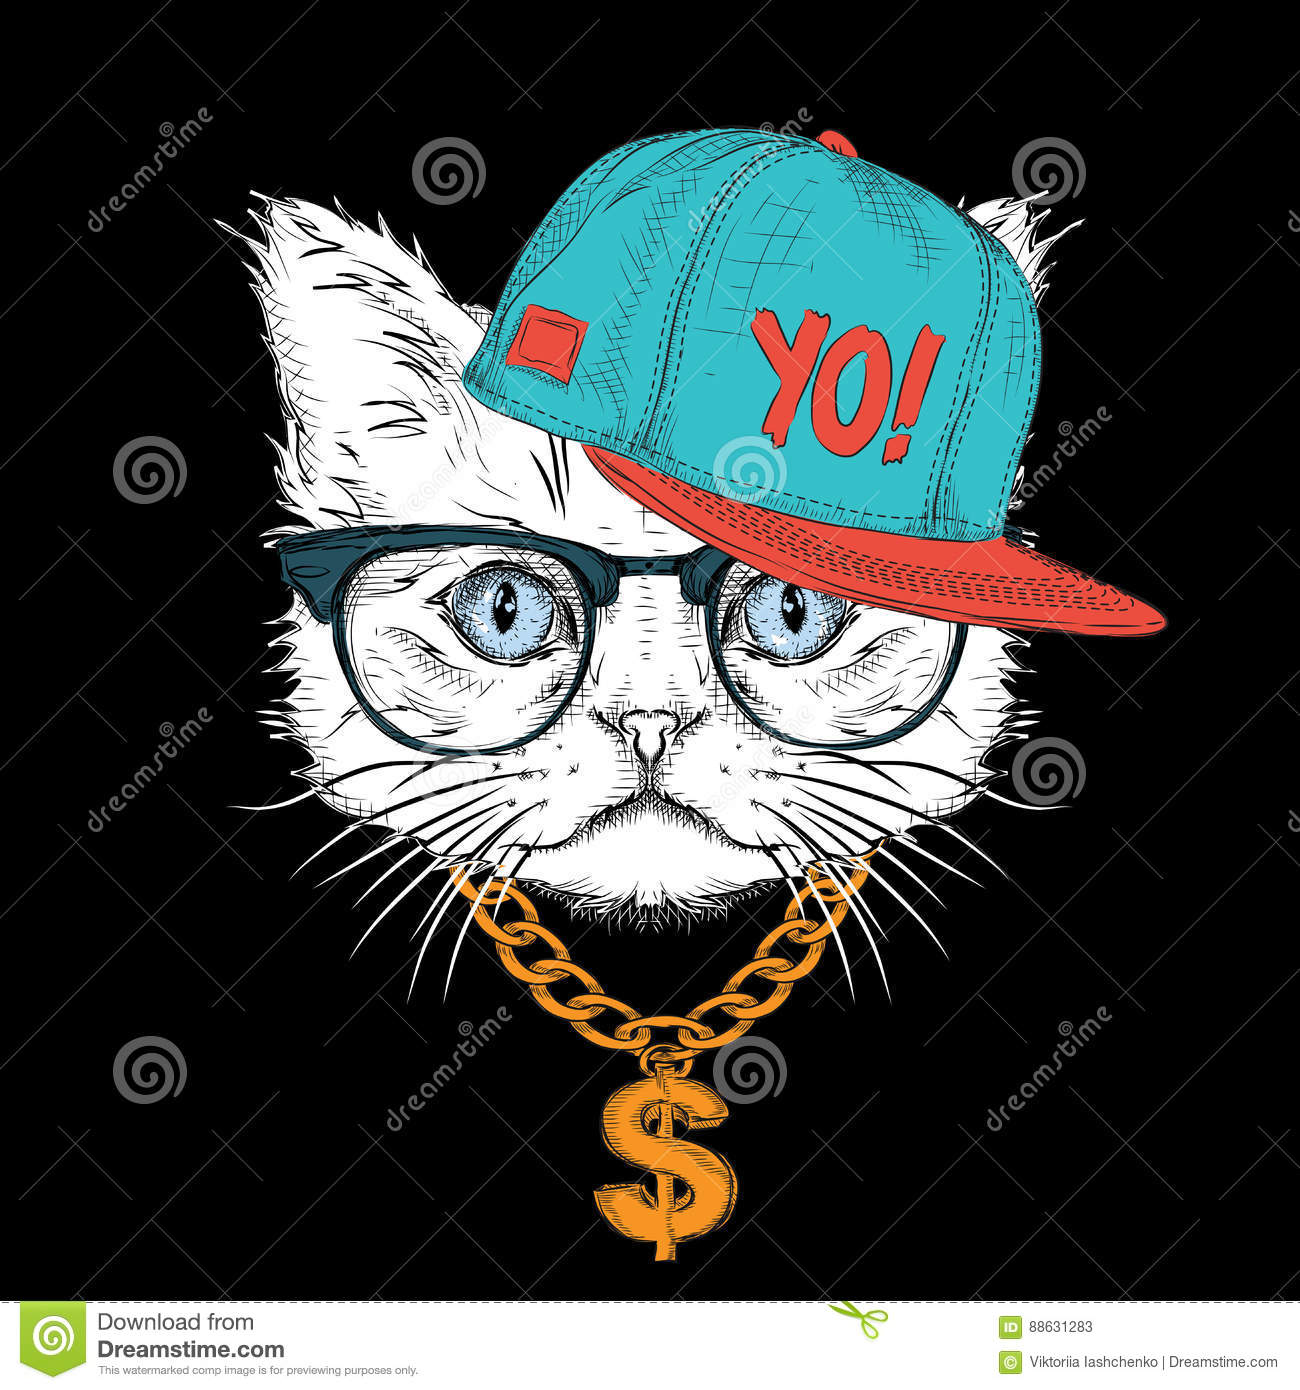 The Poster With The Image Cat Portrait In Hip Hop Hat Vector